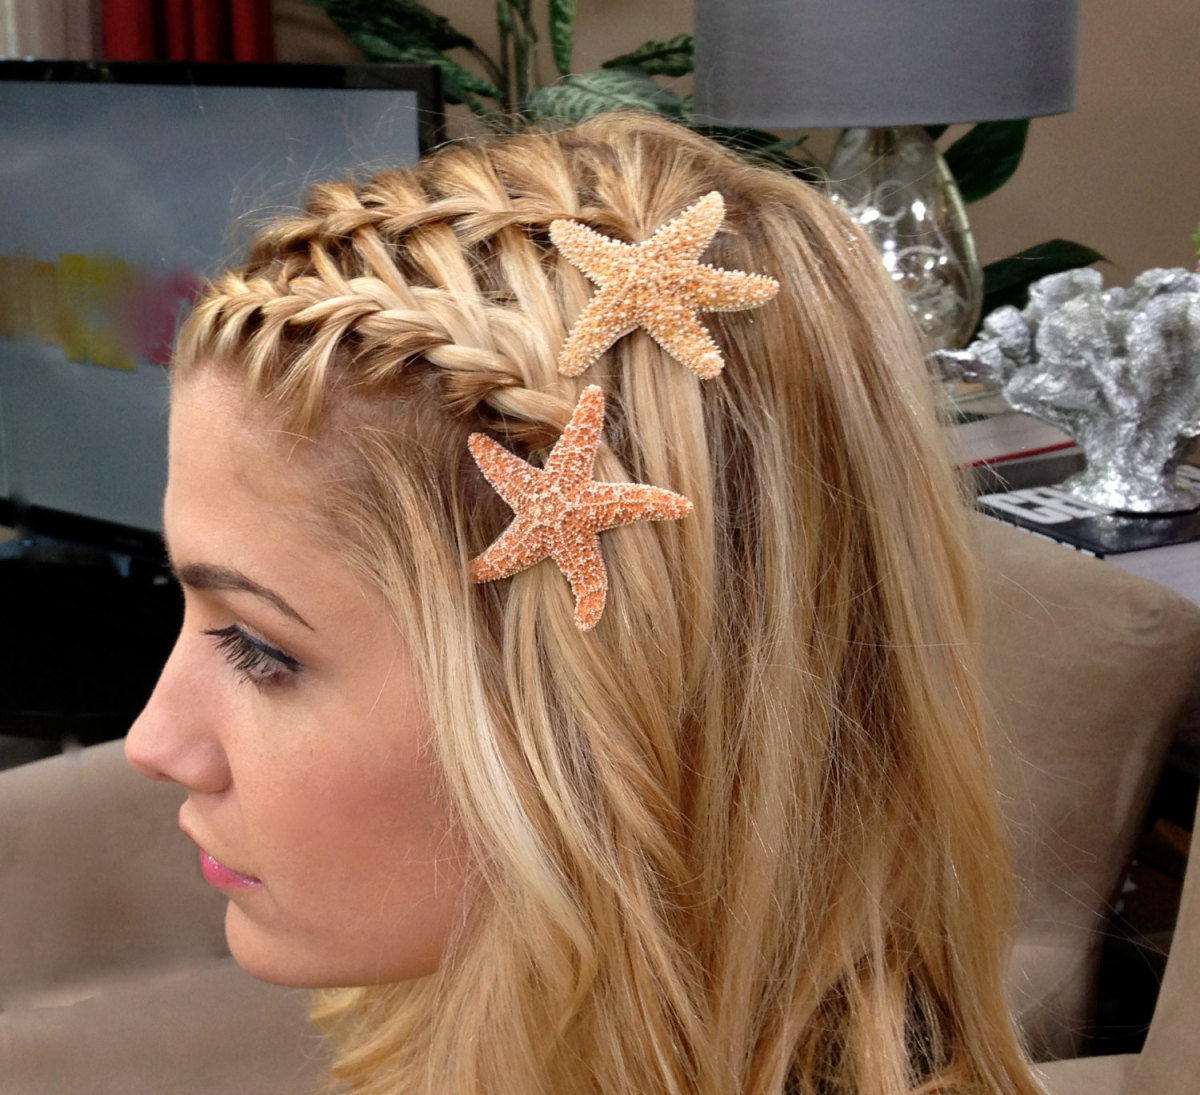 A beachy mermaid hairstyle